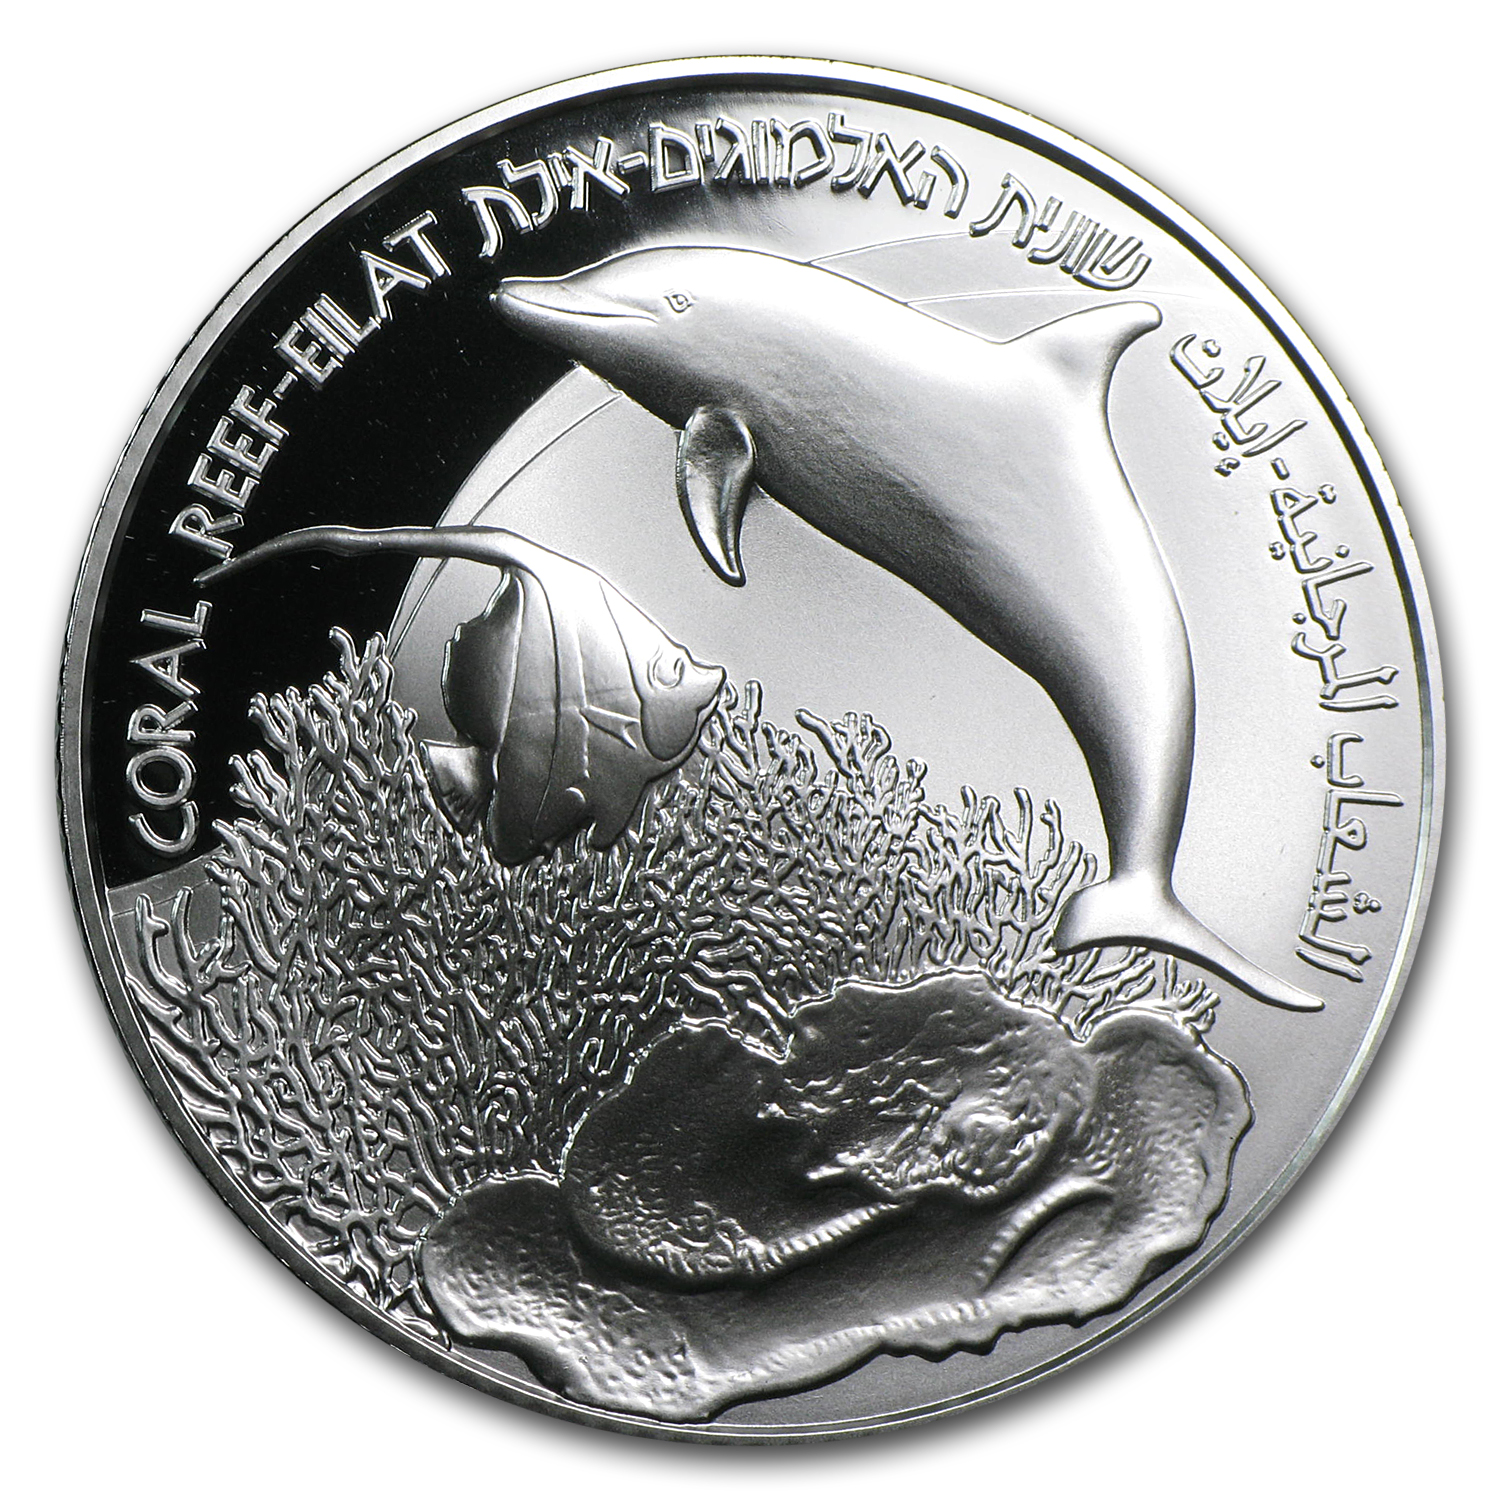 2012 Israel Coral Reef, Eilat Proof Silver 2 NIS Coin